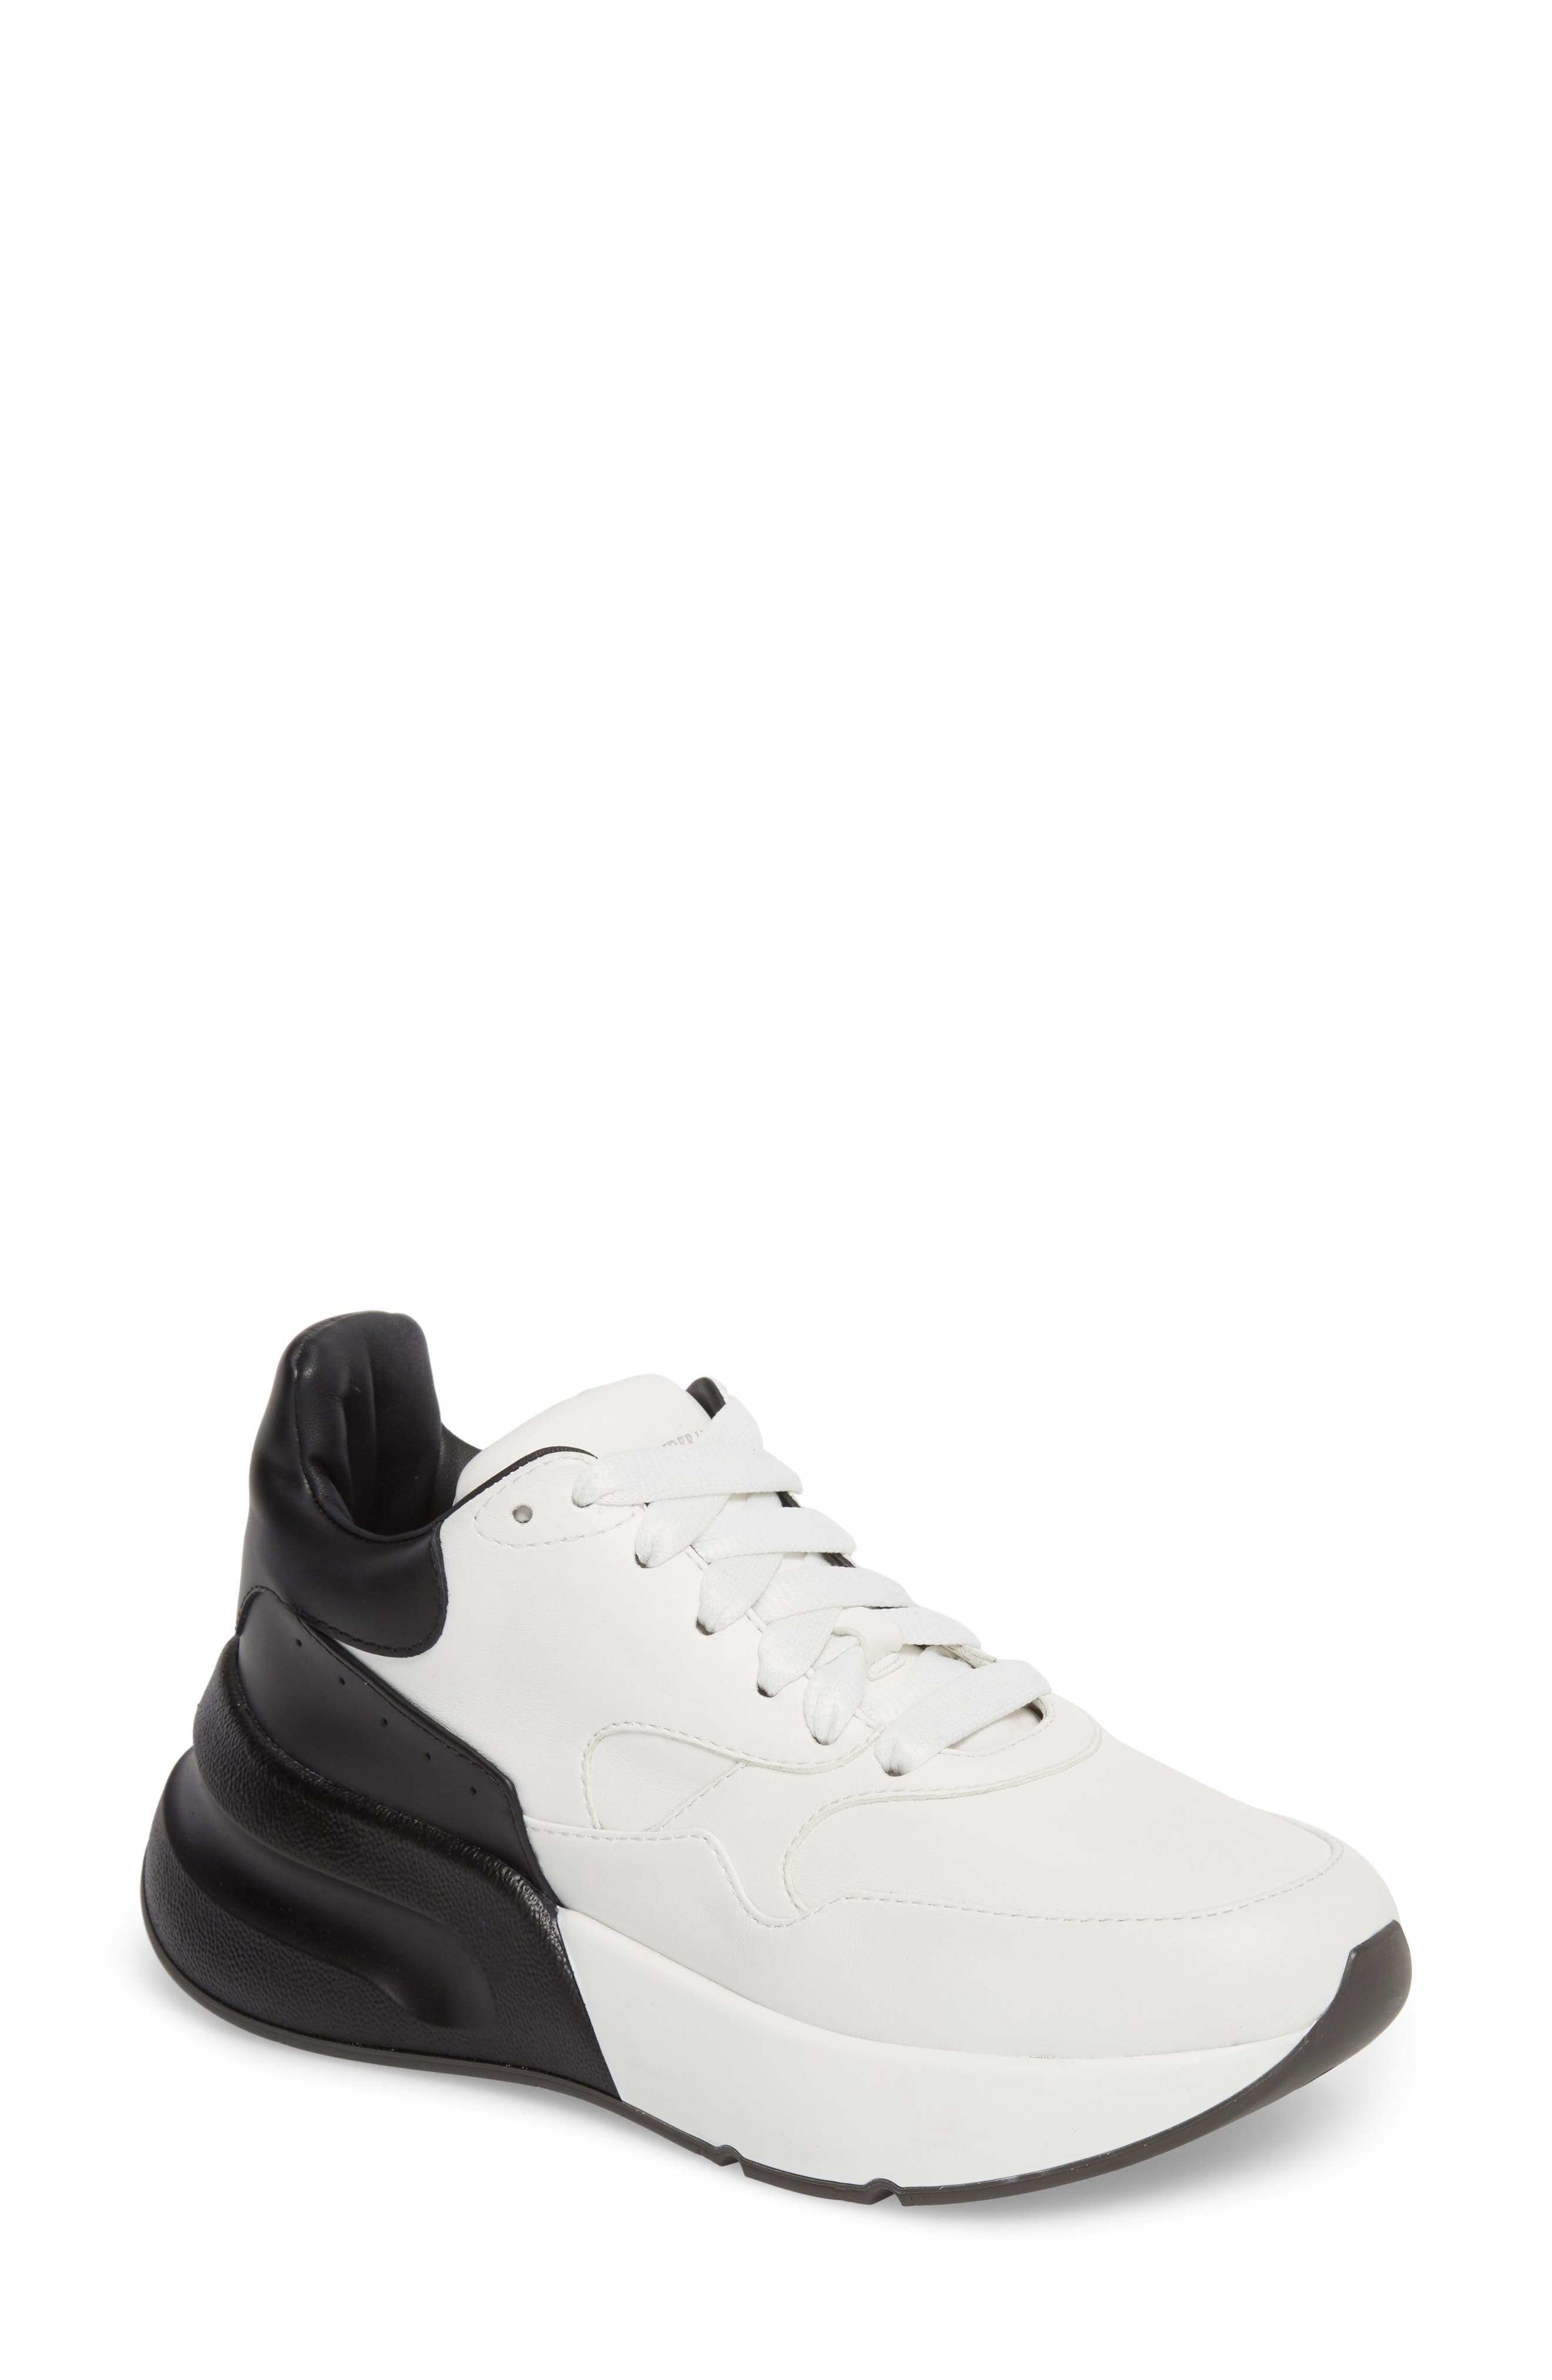 Alexander Mcqueen Oversized Lace-Up Sneaker, White